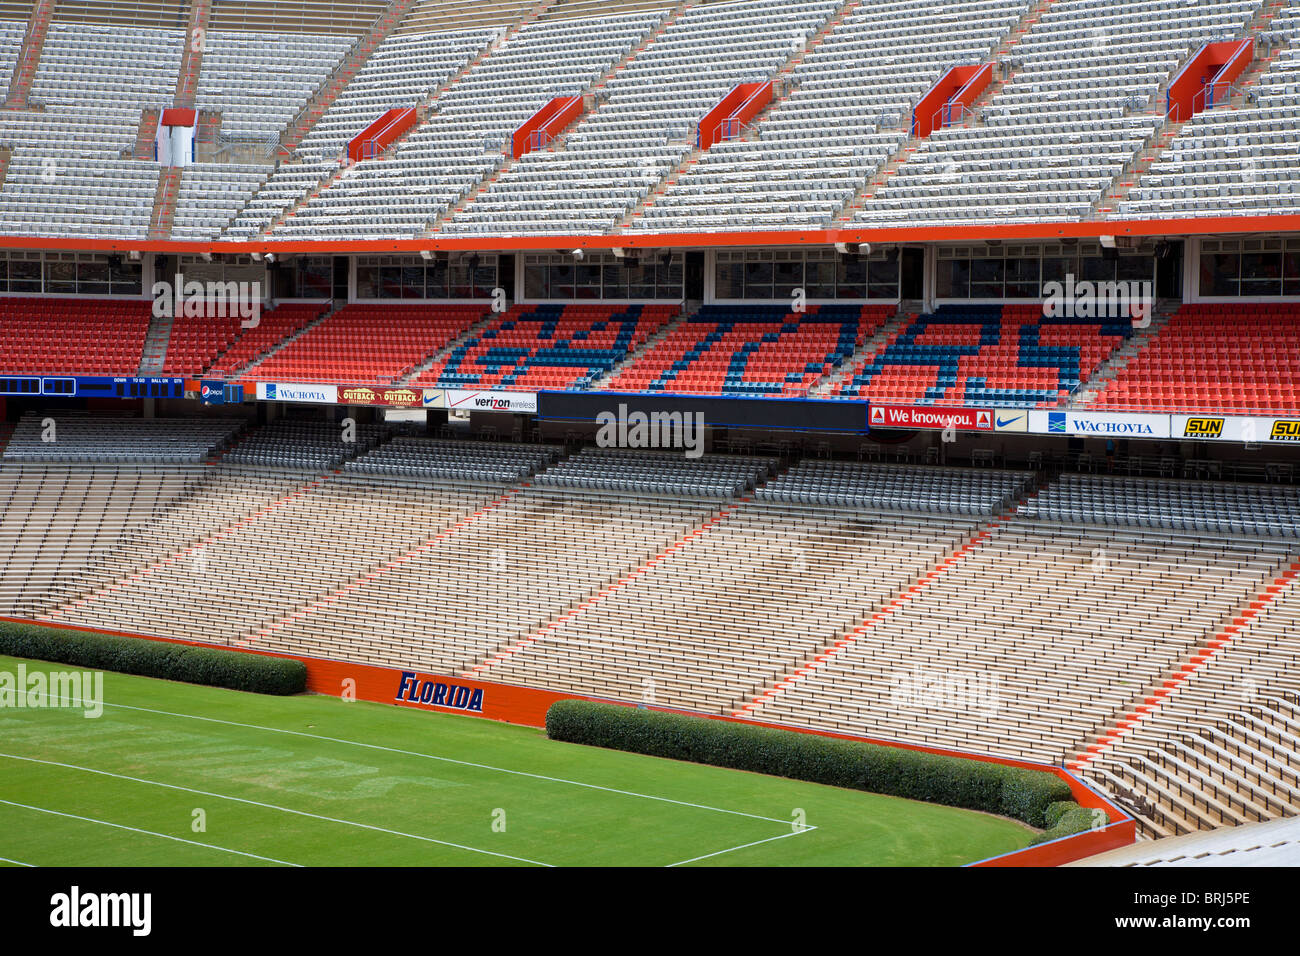 Interior of Ben Hill Griffin stadium commonly known as 'The Swamp' Home of the University of Florida Gators - Stock Image